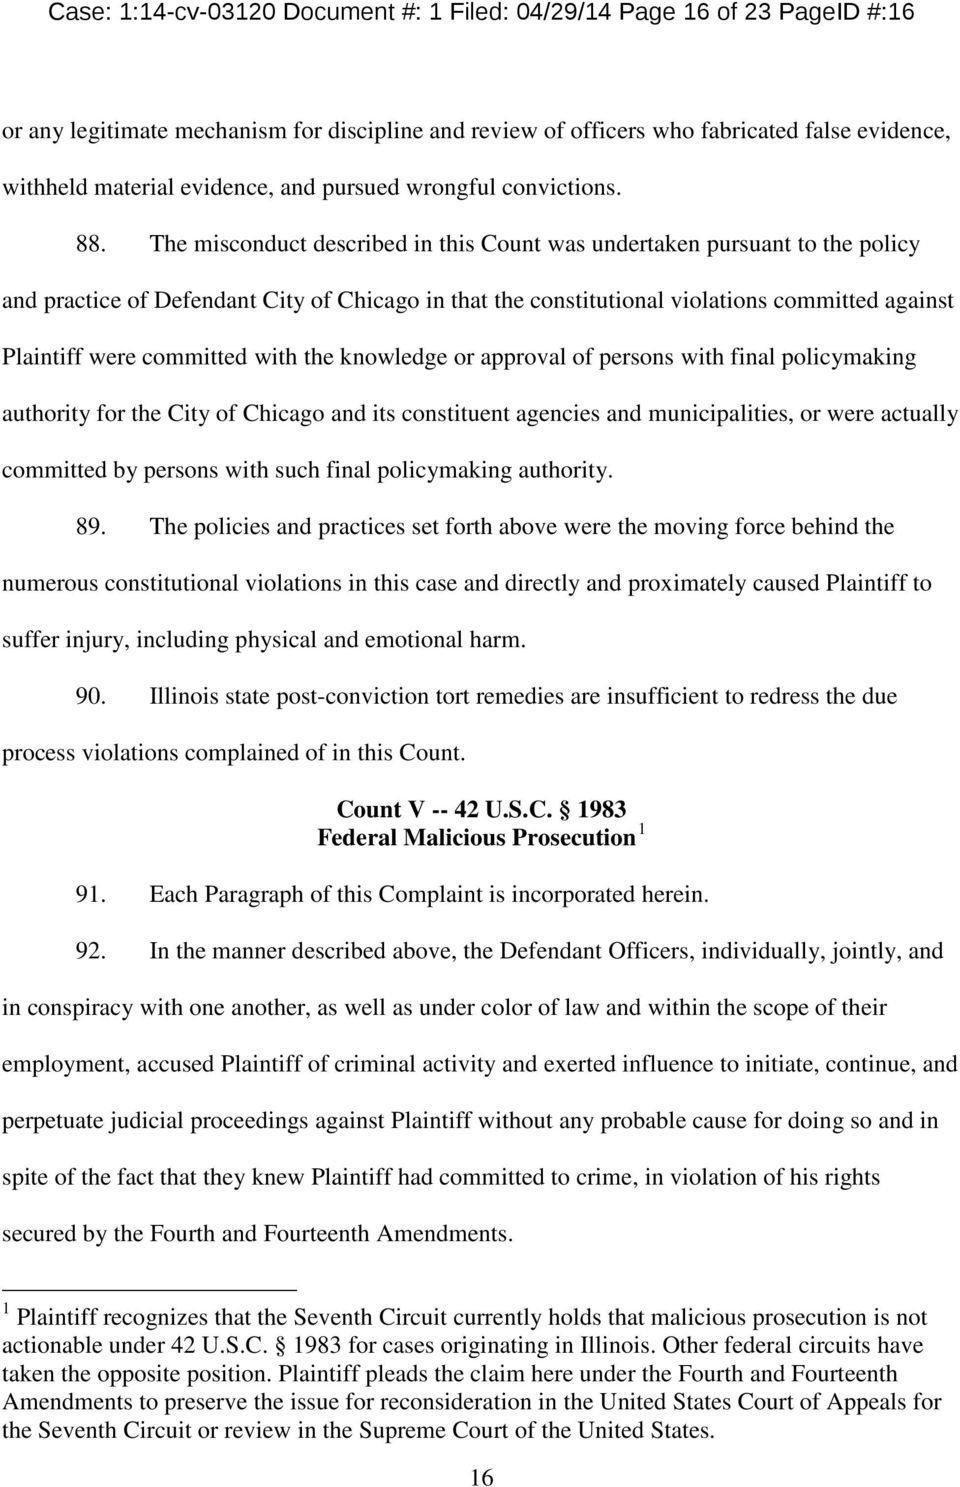 The misconduct described in this Count was undertaken pursuant to the policy and practice of Defendant City of Chicago in that the constitutional violations committed against Plaintiff were committed